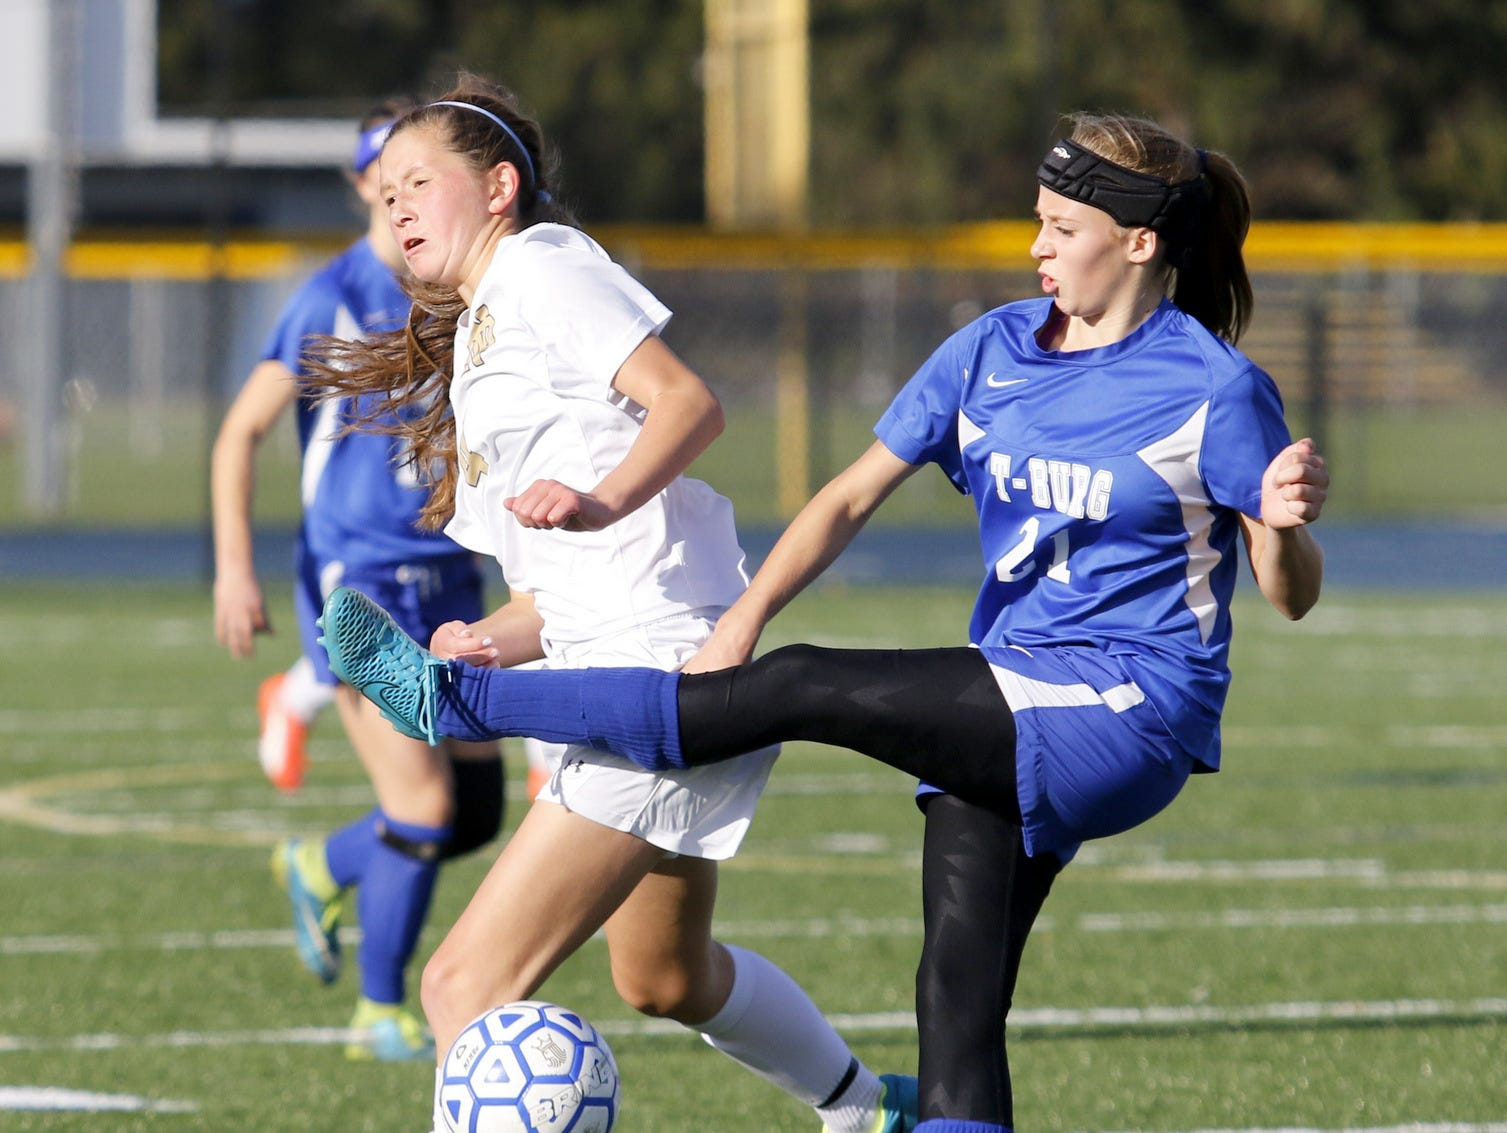 Notre Dame's Jillian Perrault, left, and Trumansburg's Tess Parker battle for the ball Tuesday during a Section 4 Class C girls soccer semifinal at Brewer Memorial Stadium.